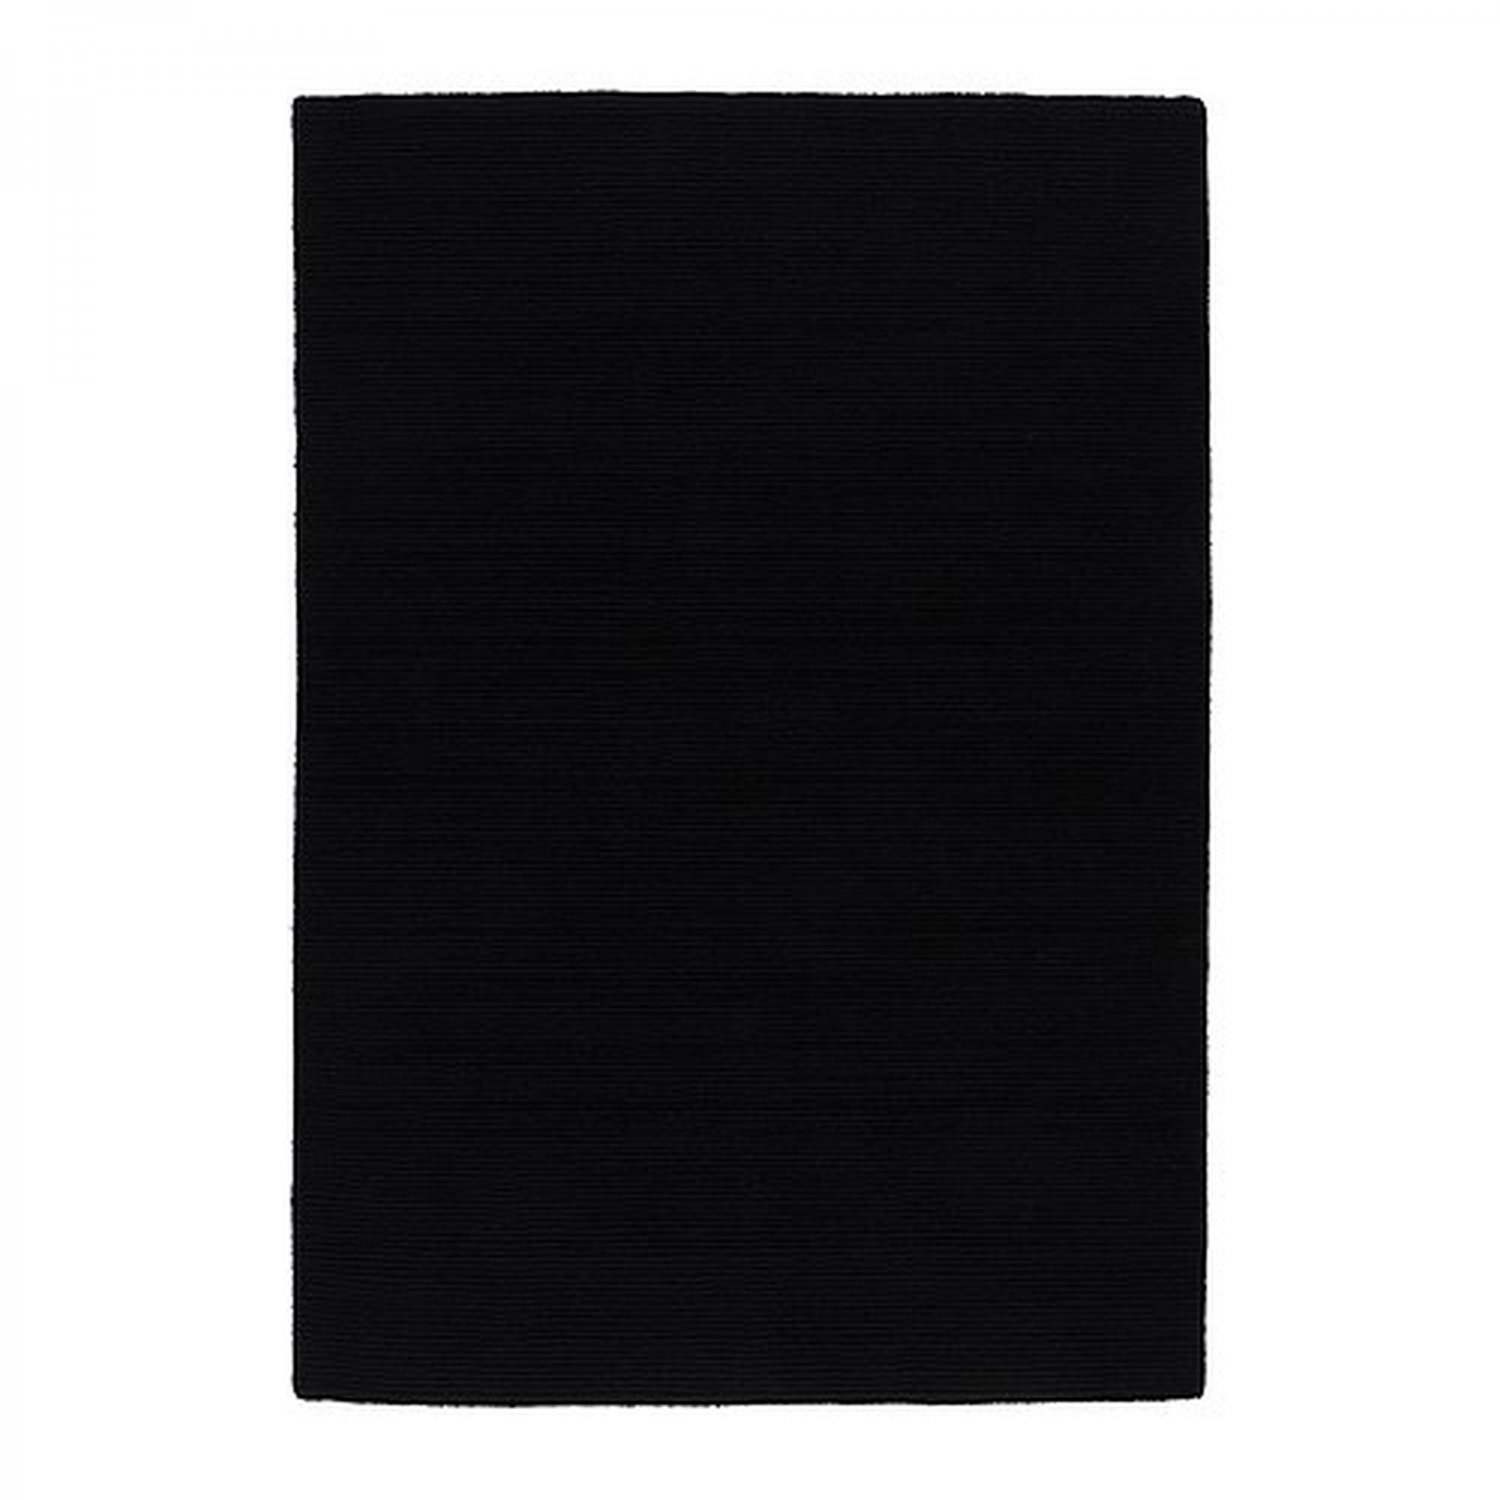 ikea almsted black area rug mat wool modern classic low